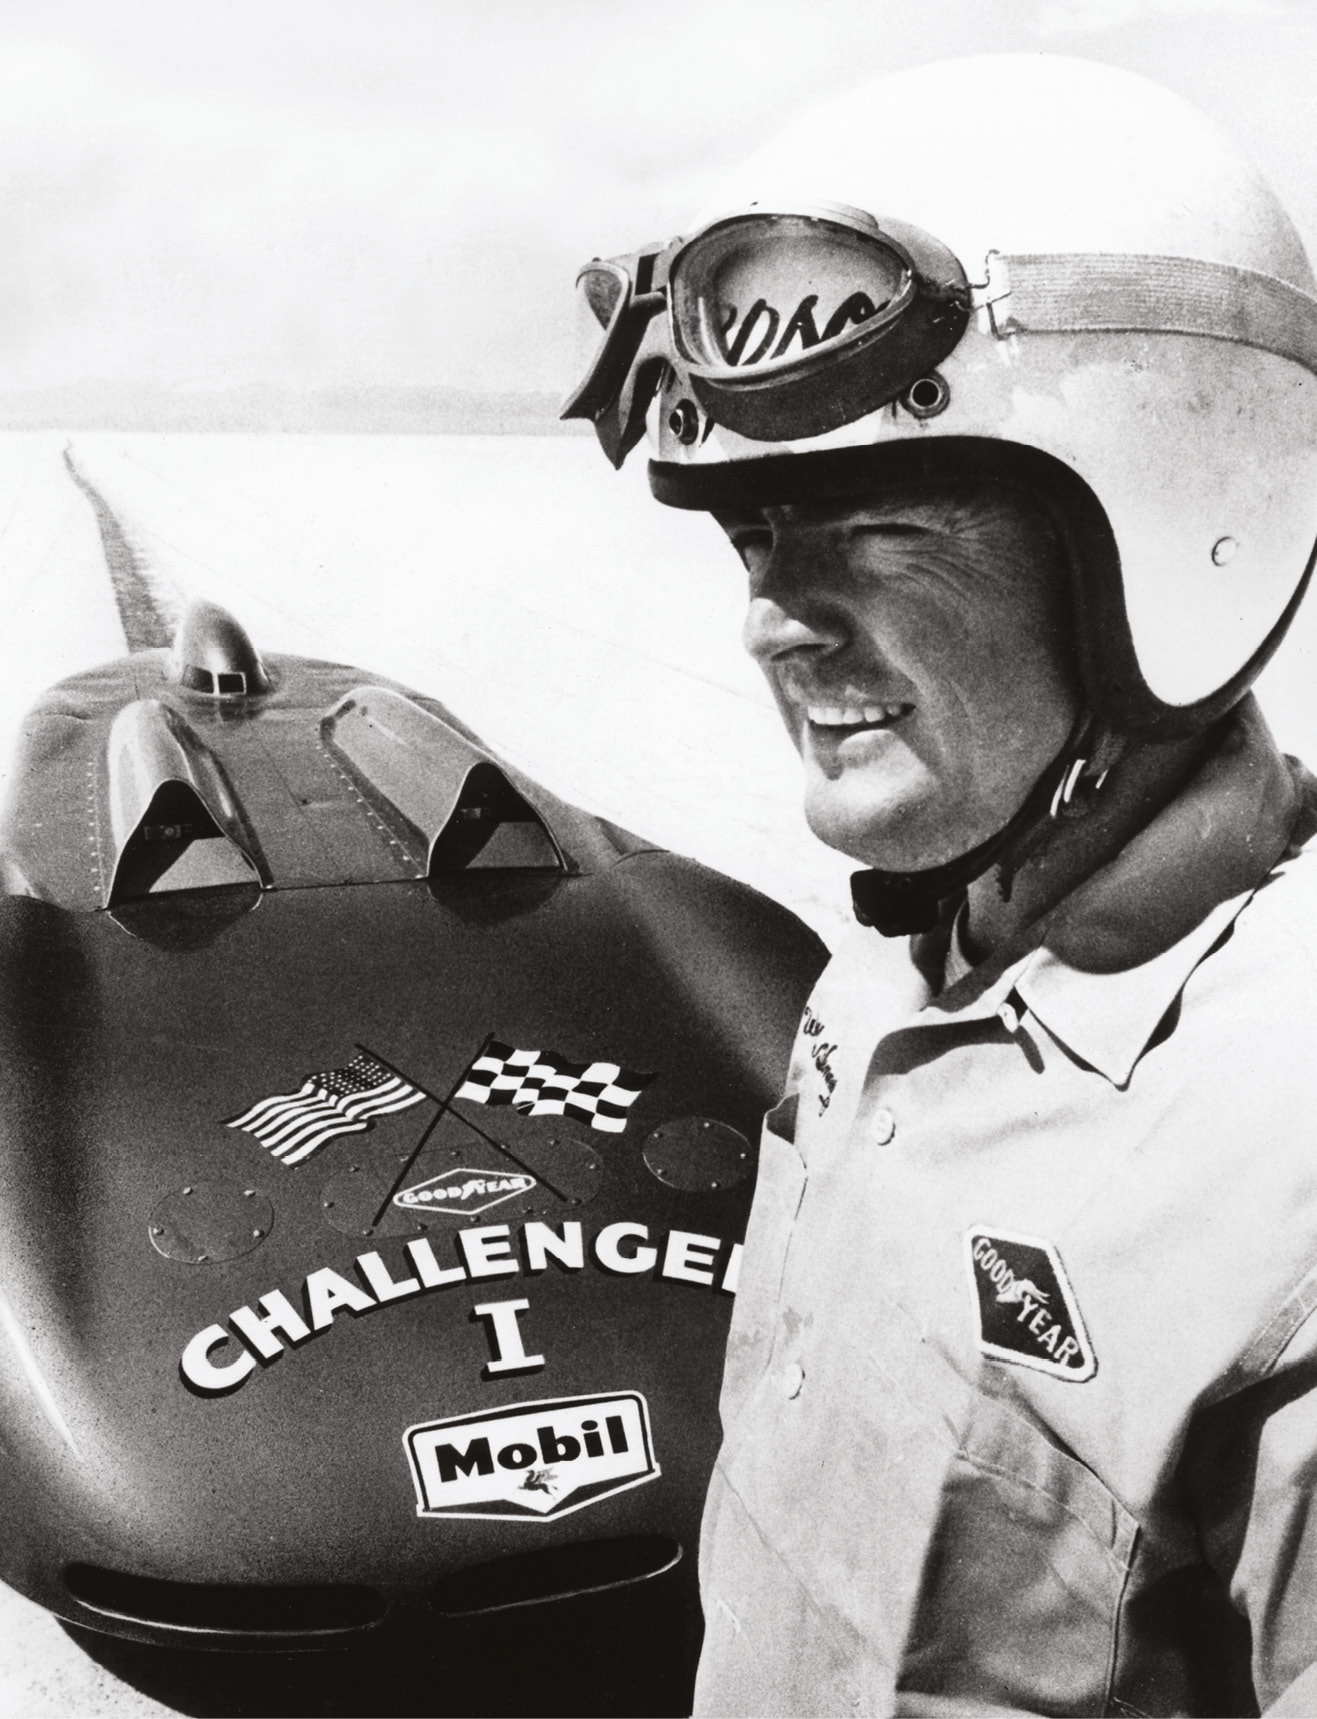 Mickey Thompson hit 406mph aboard Challenger I in 1960 but the car broke on his return run, so he missed the record